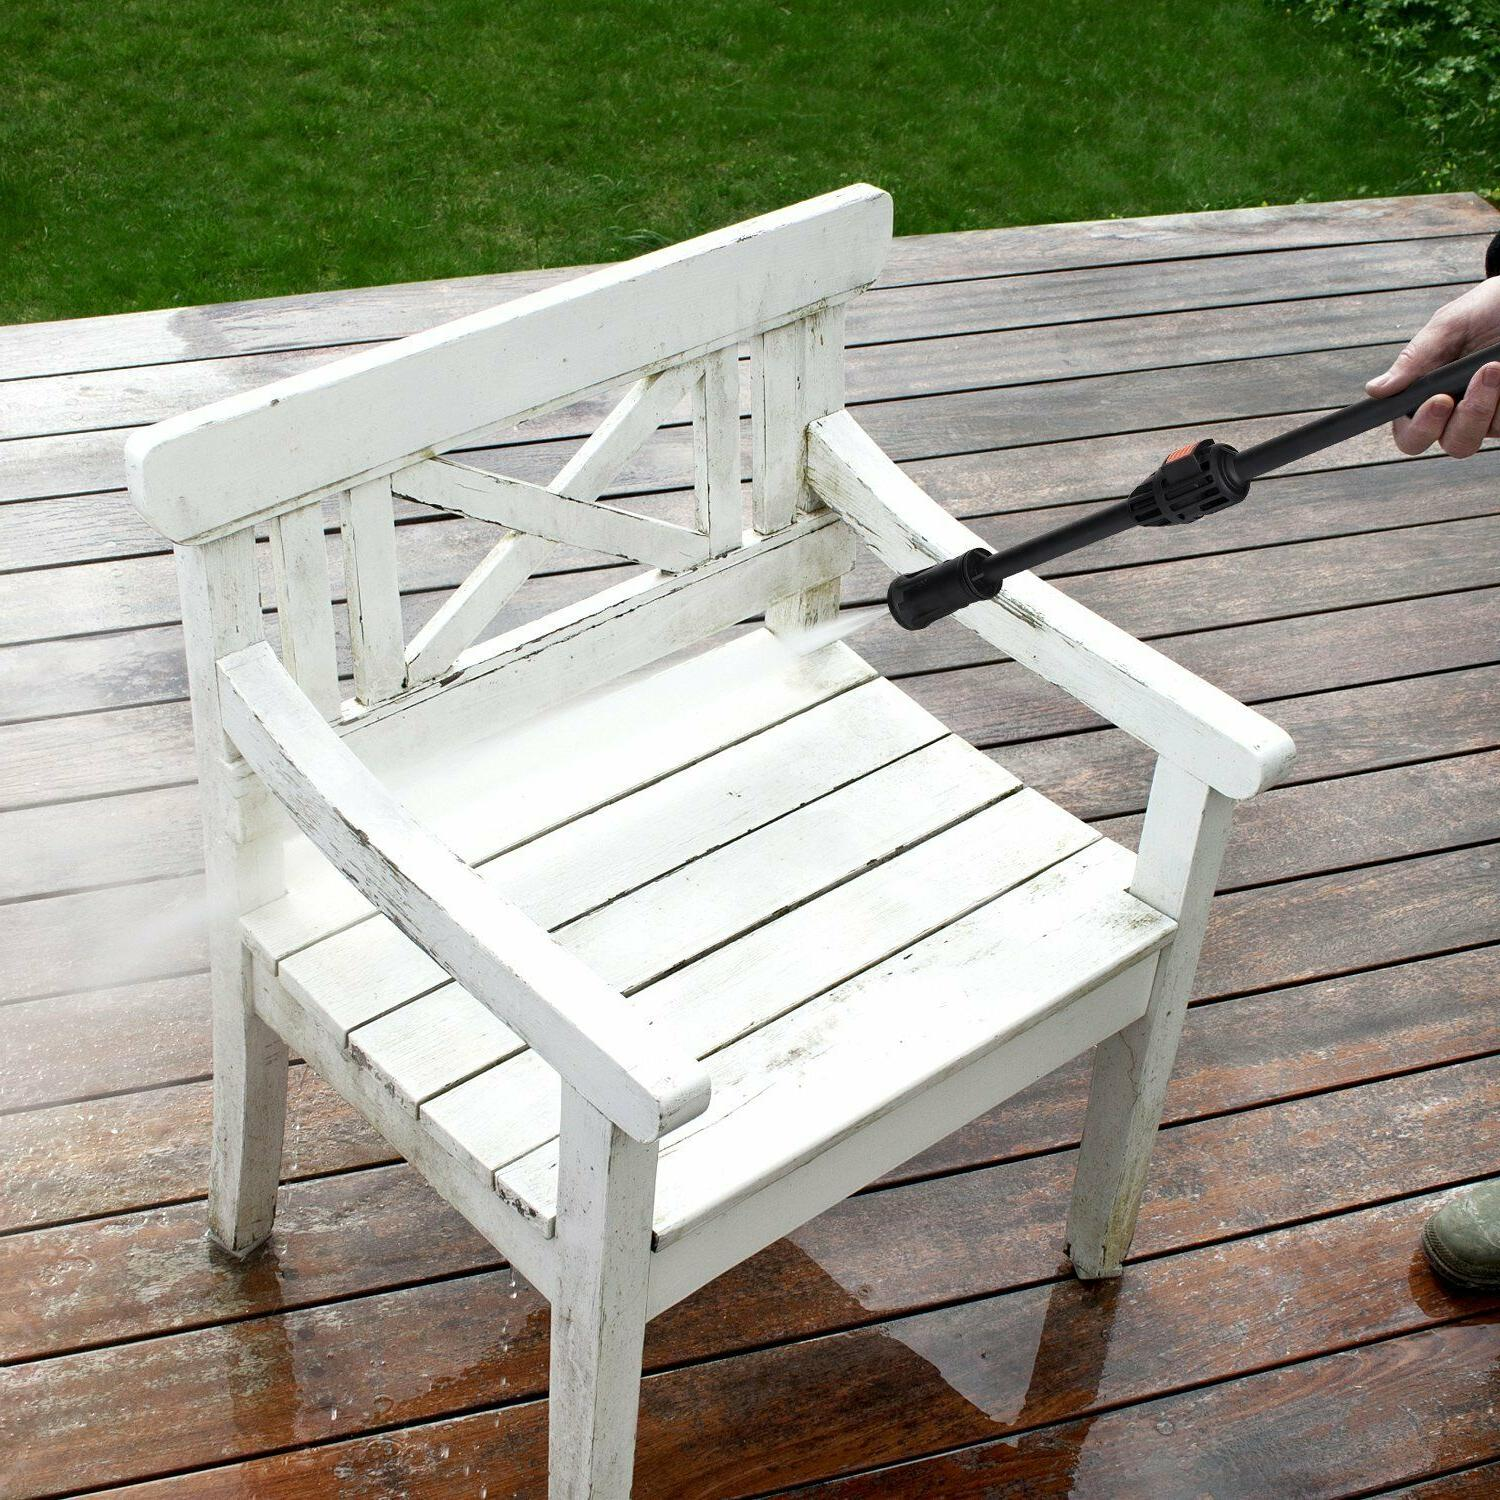 Pressure Washer, 1600 1.72 1400W Electric Power